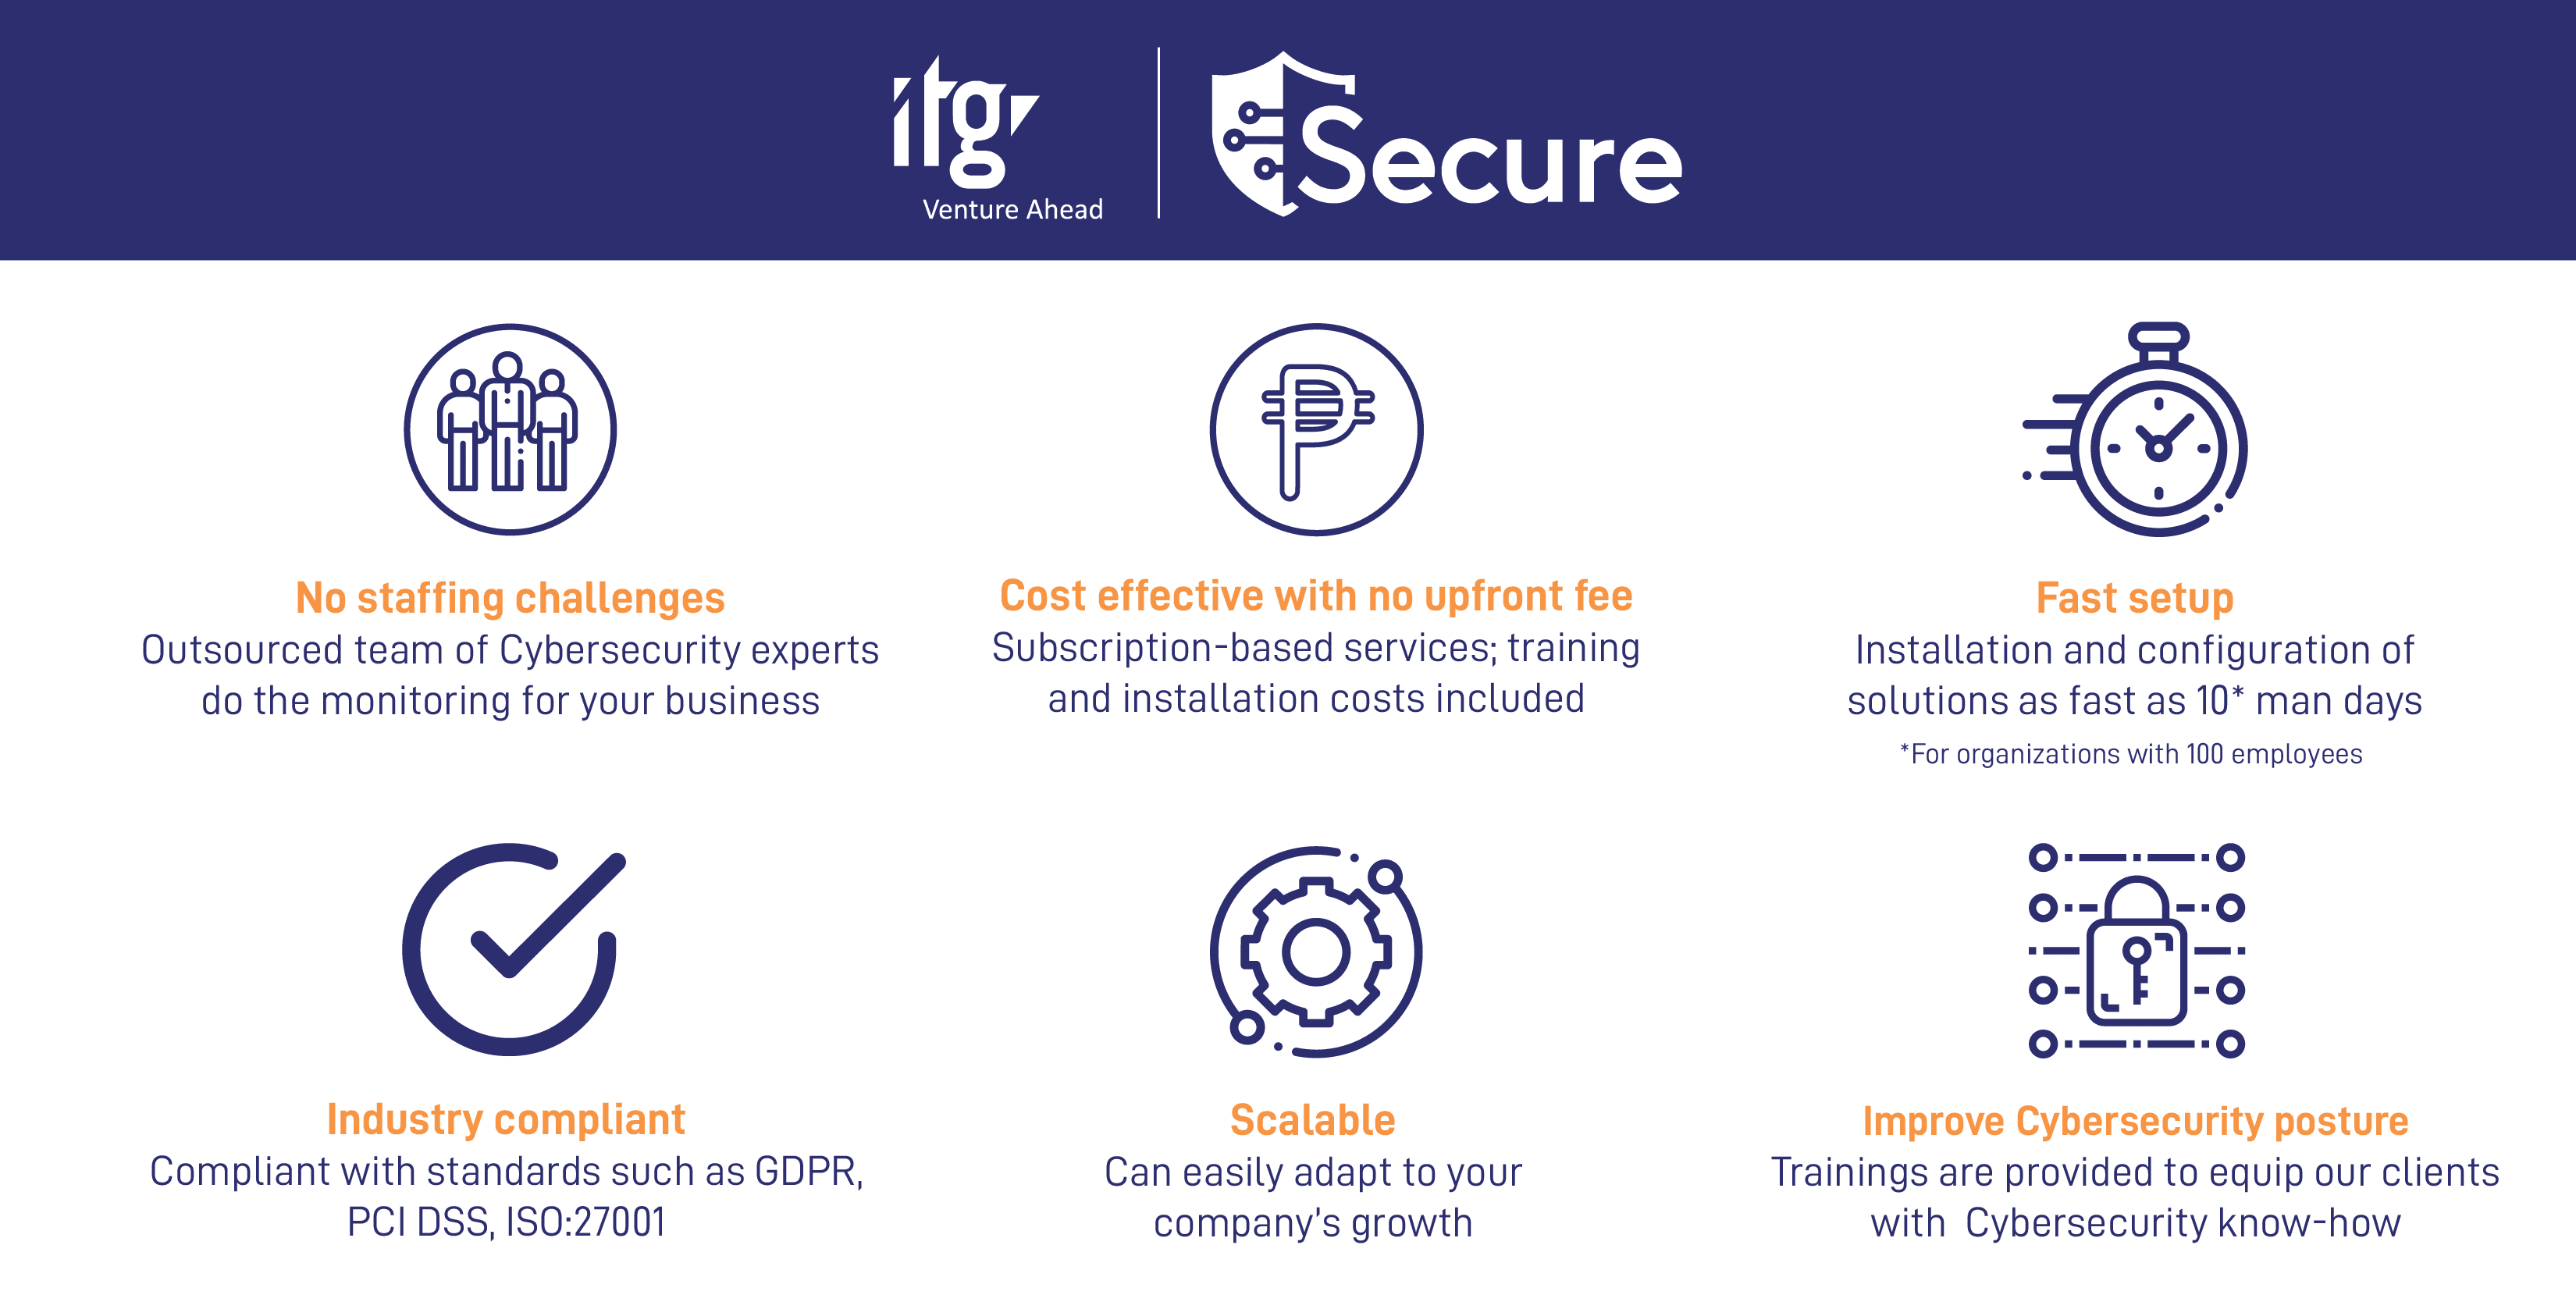 itg-secure-features